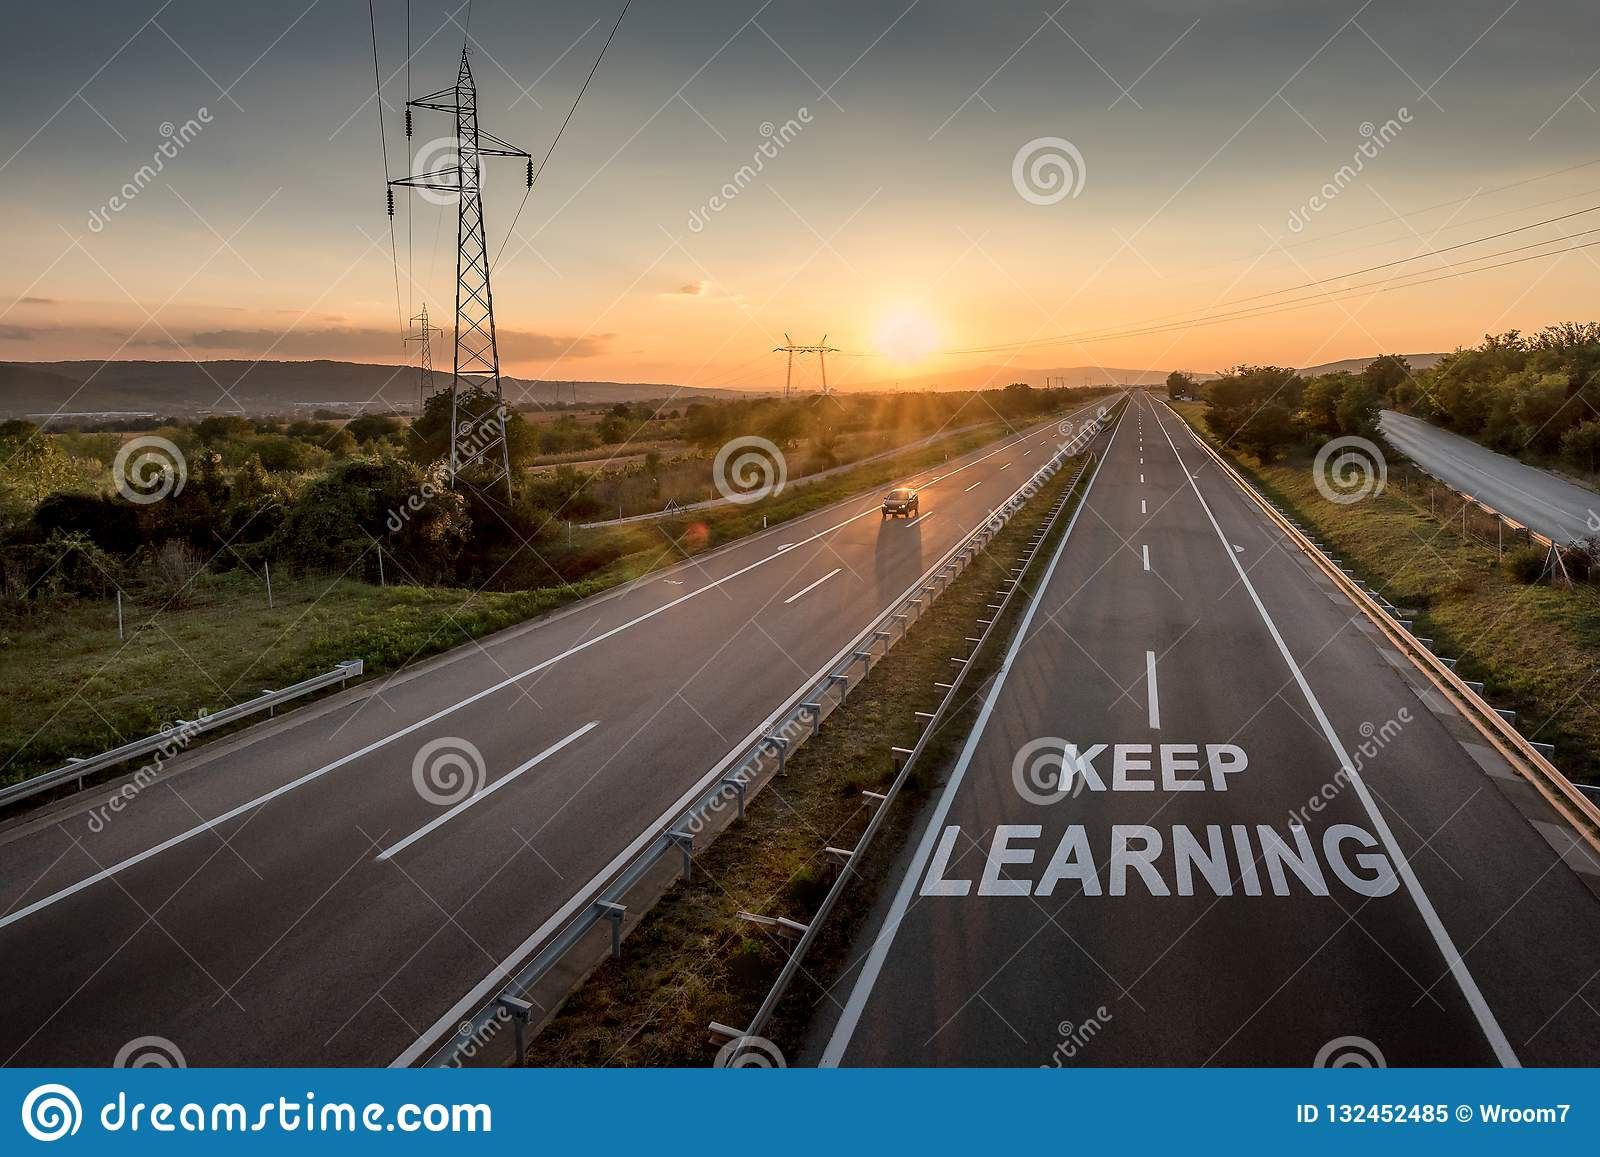 Beautiful Motorway with a Single Car at sunset with motivational message Keep Learning